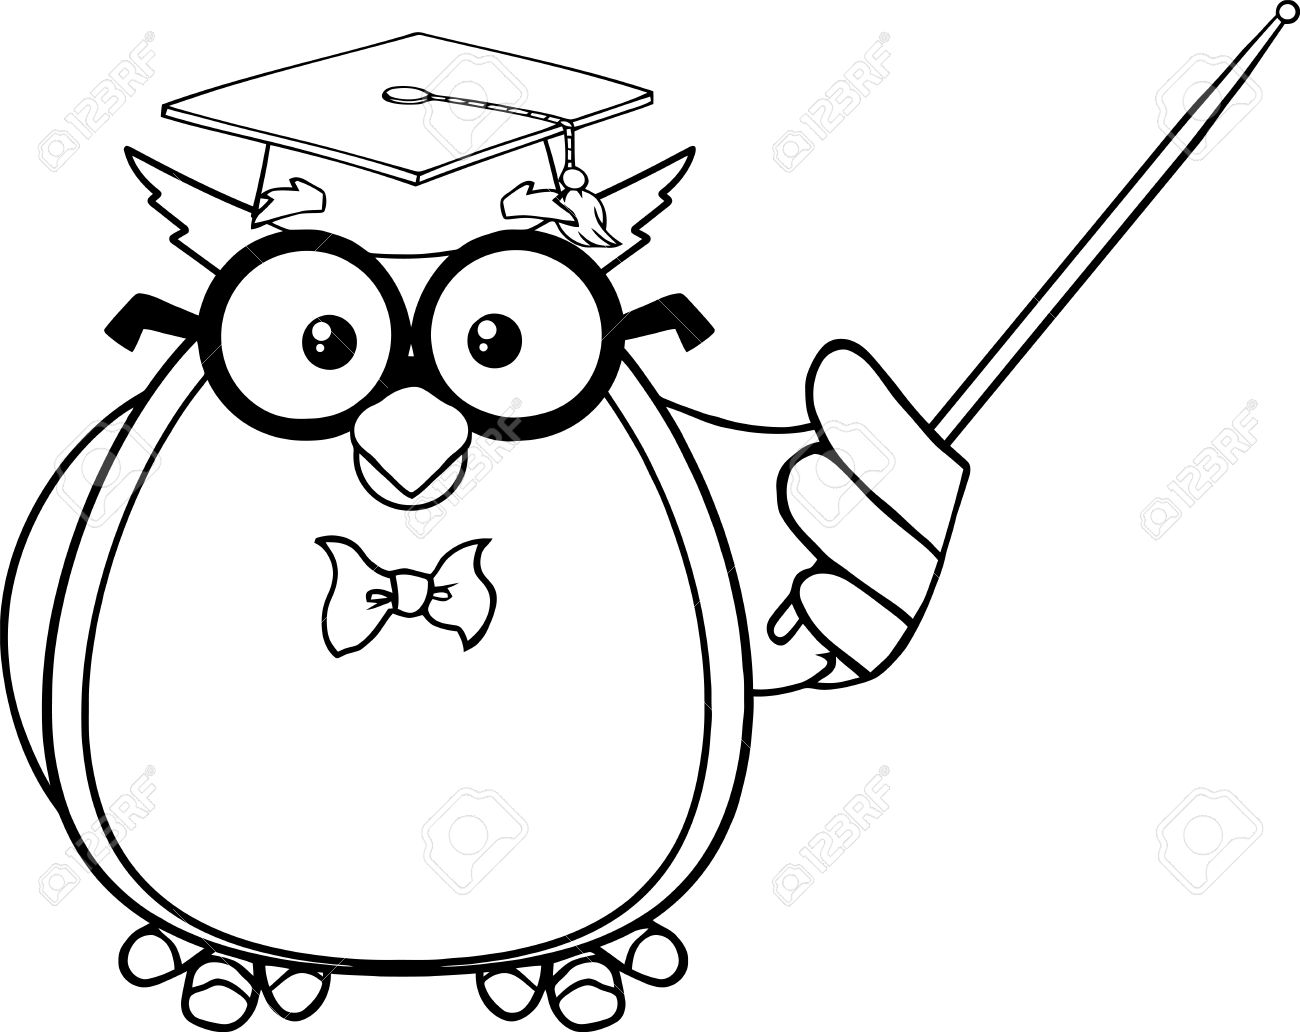 Black And White Wise Owl Teacher Cartoon Mascot Character With...